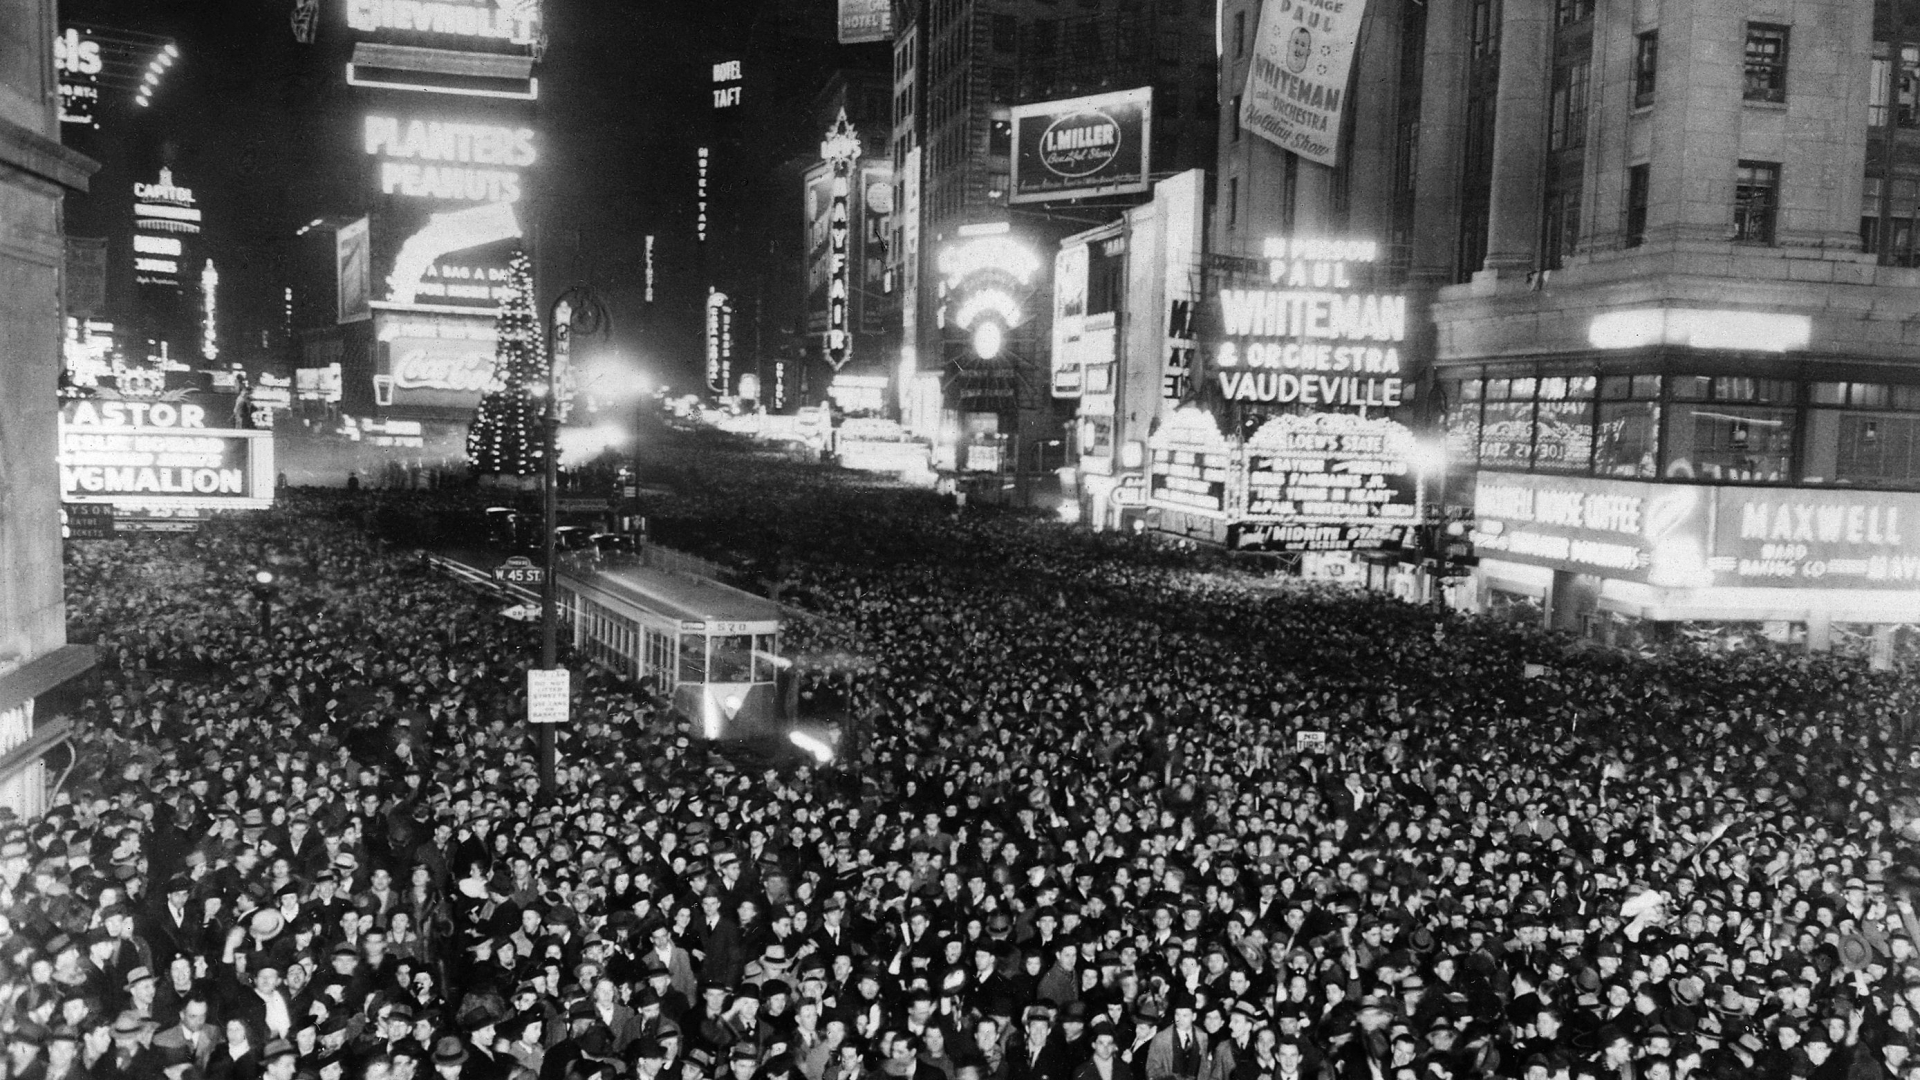 People gathering in Times Square to celebrate the New Year Eve, 1938. (Credit: France Presse Voir/AFP/Getty Images)